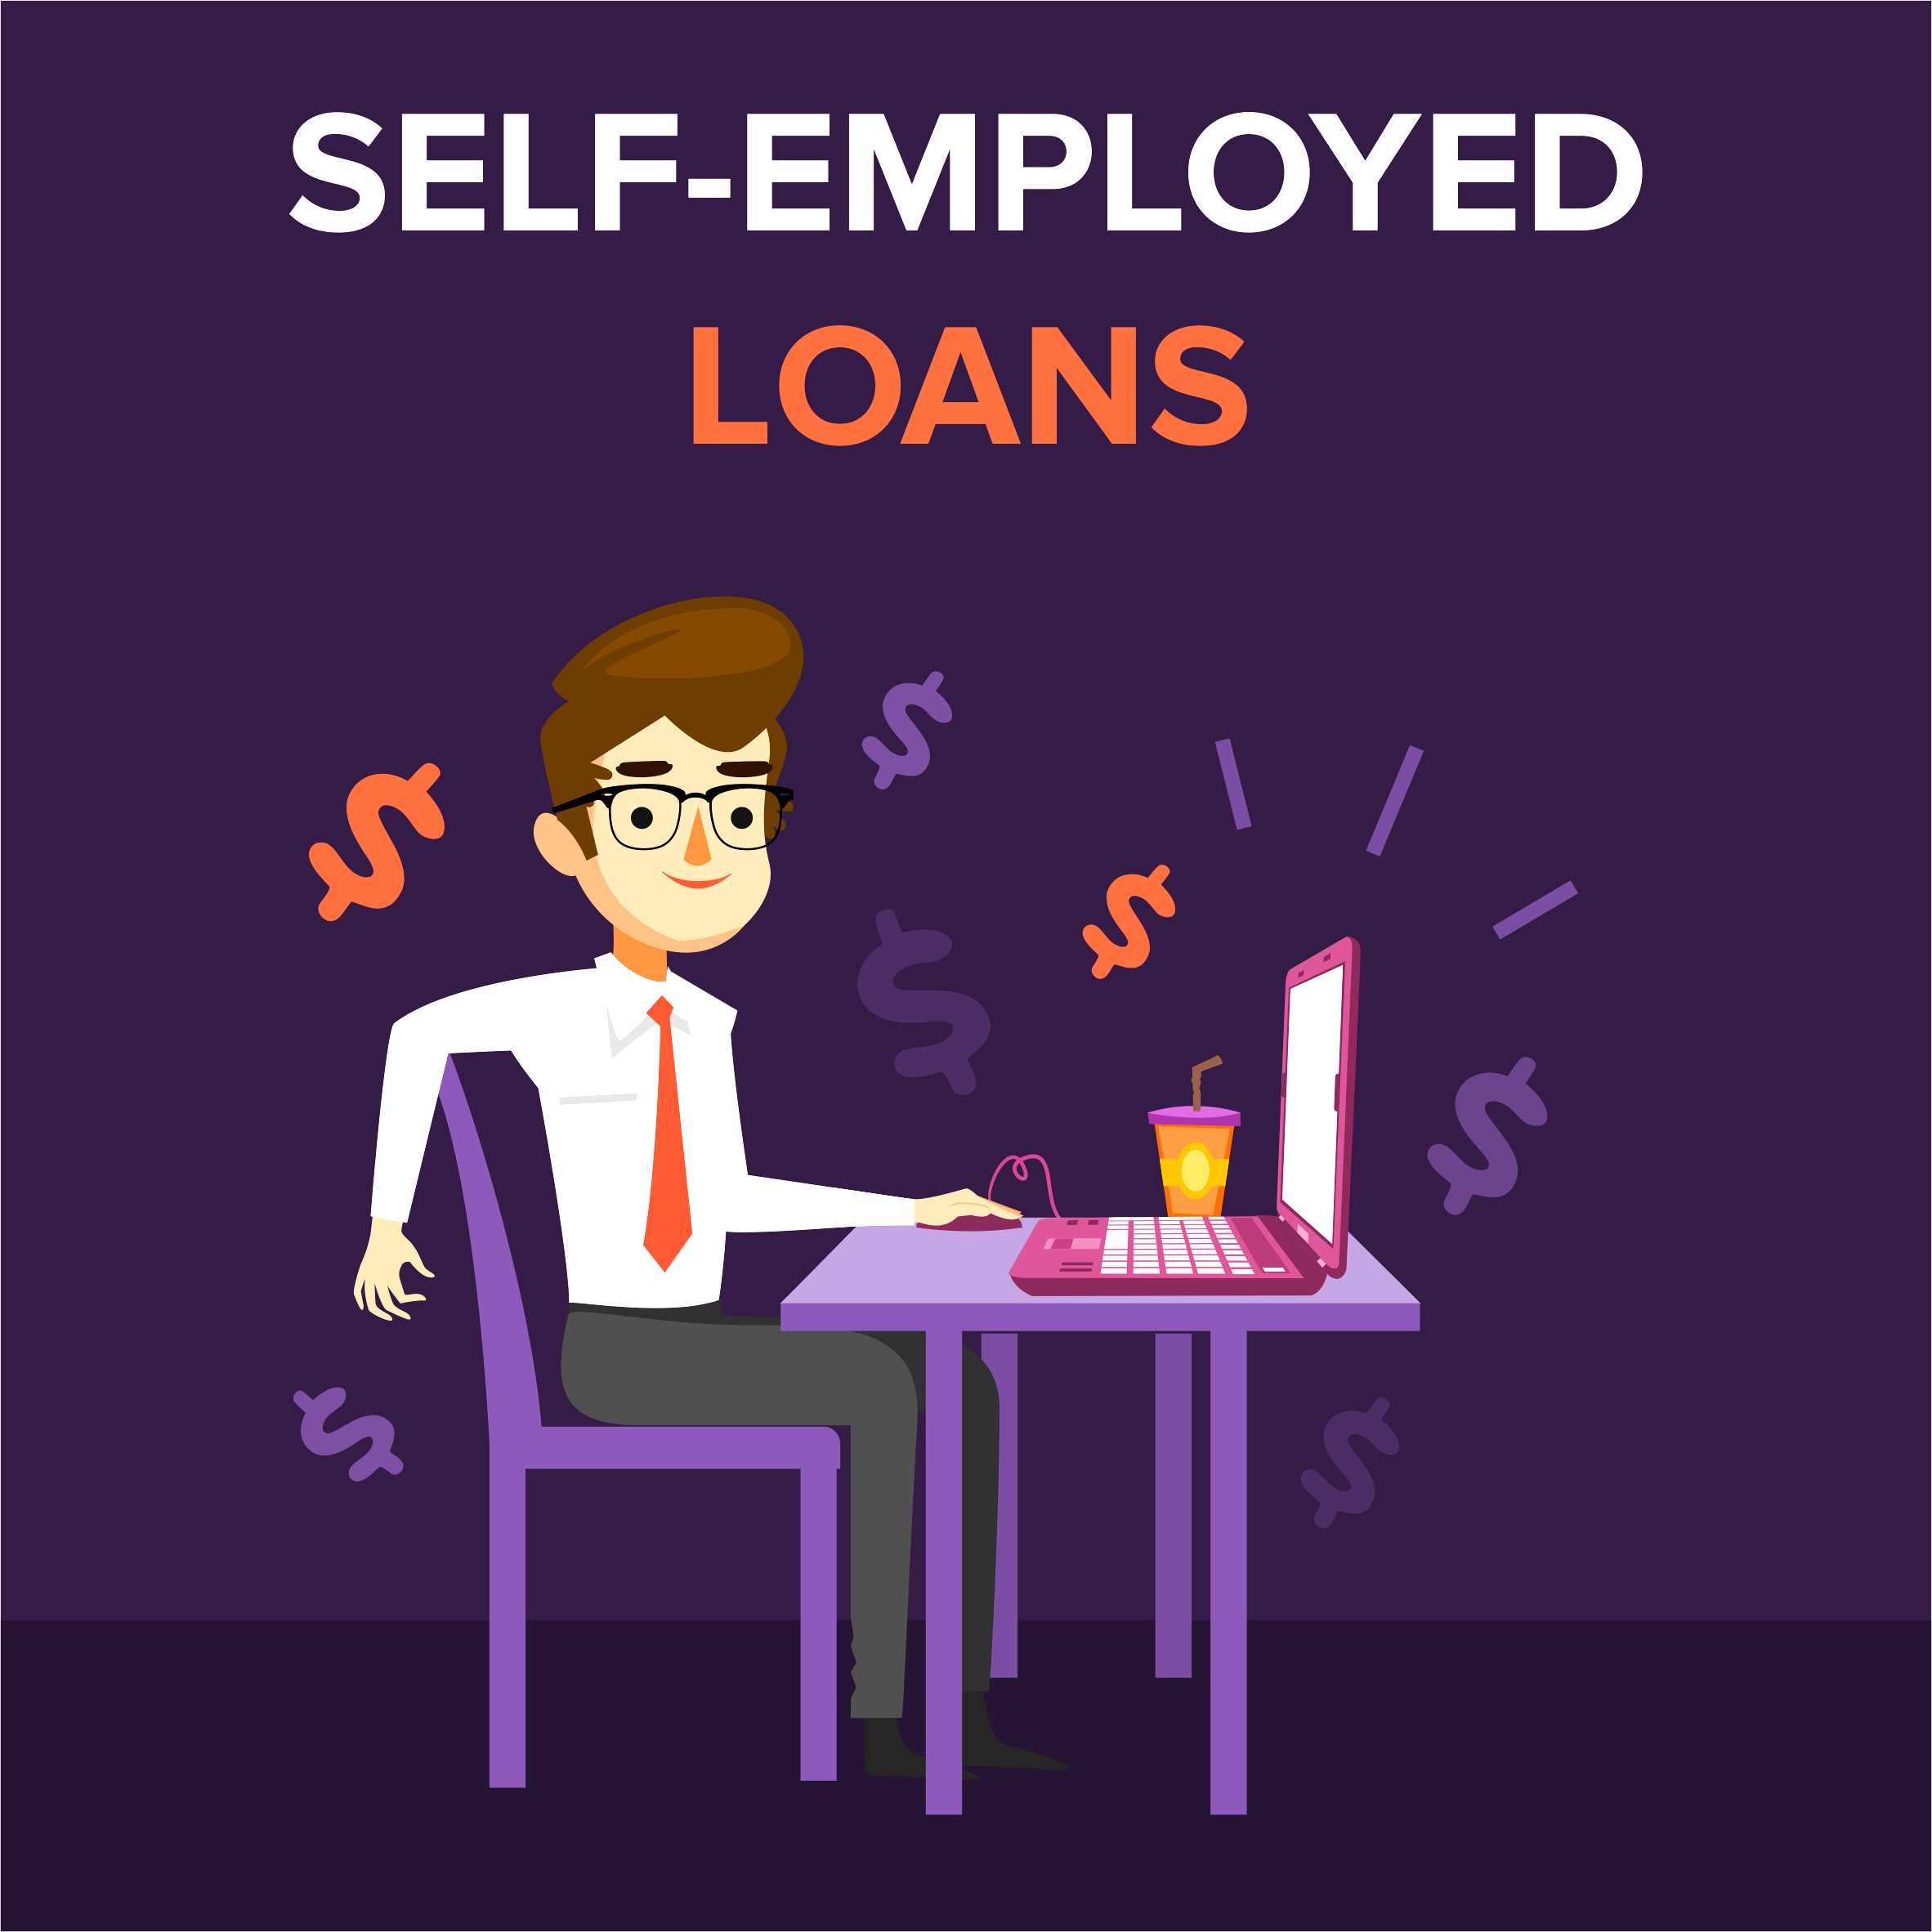 Self-Employed Loans